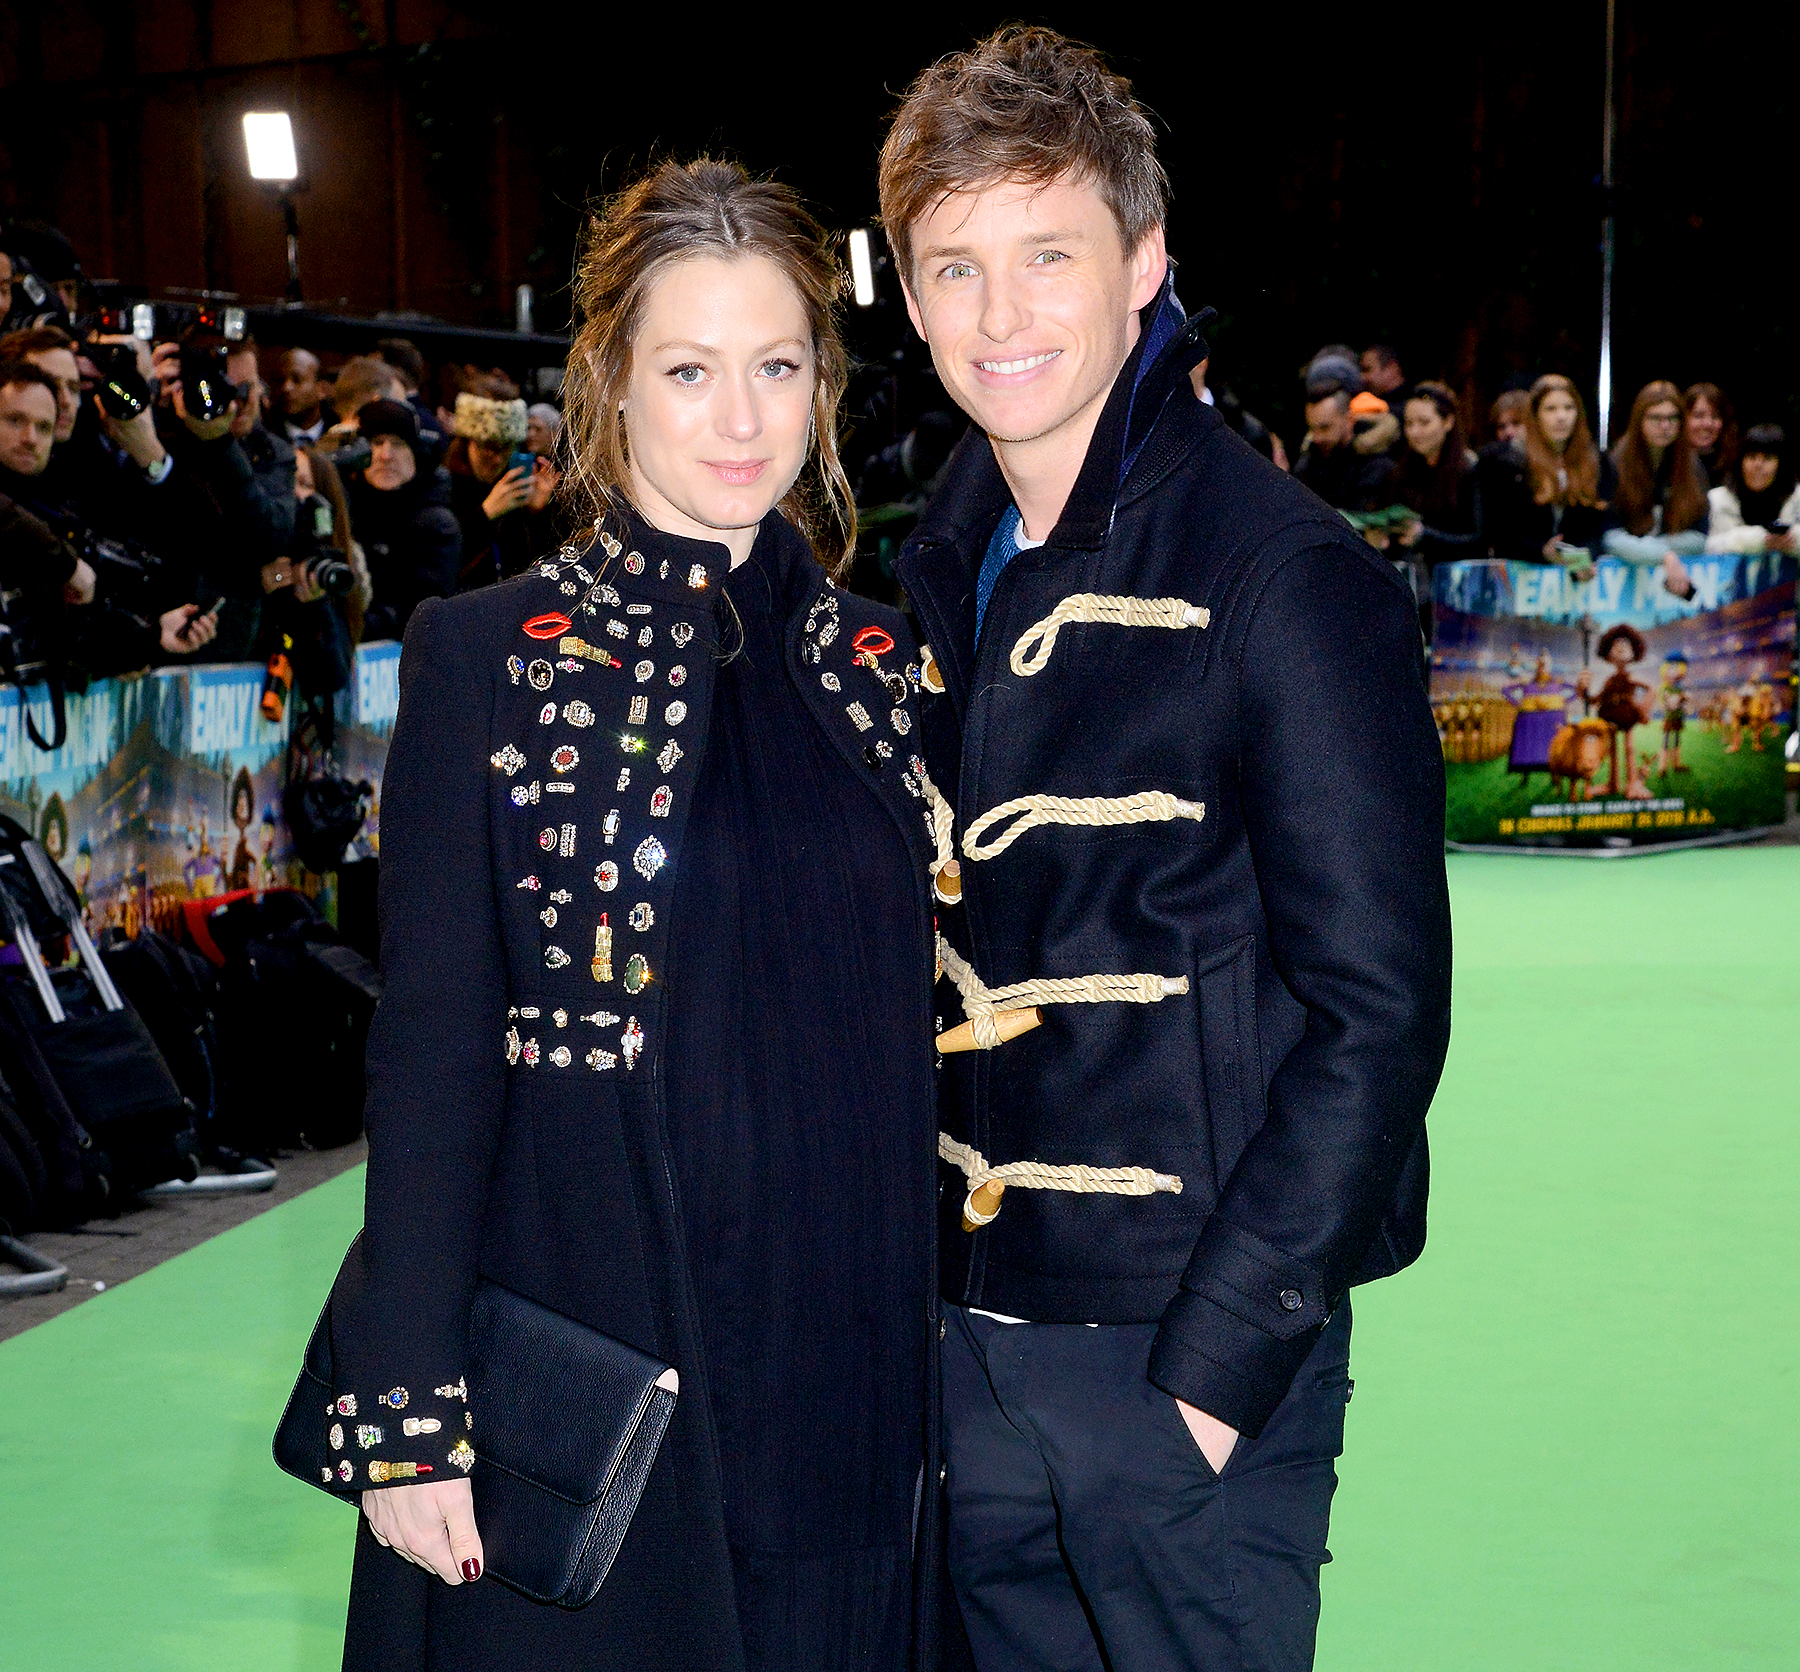 Eddie Redmayne's wife gives birth to their second child